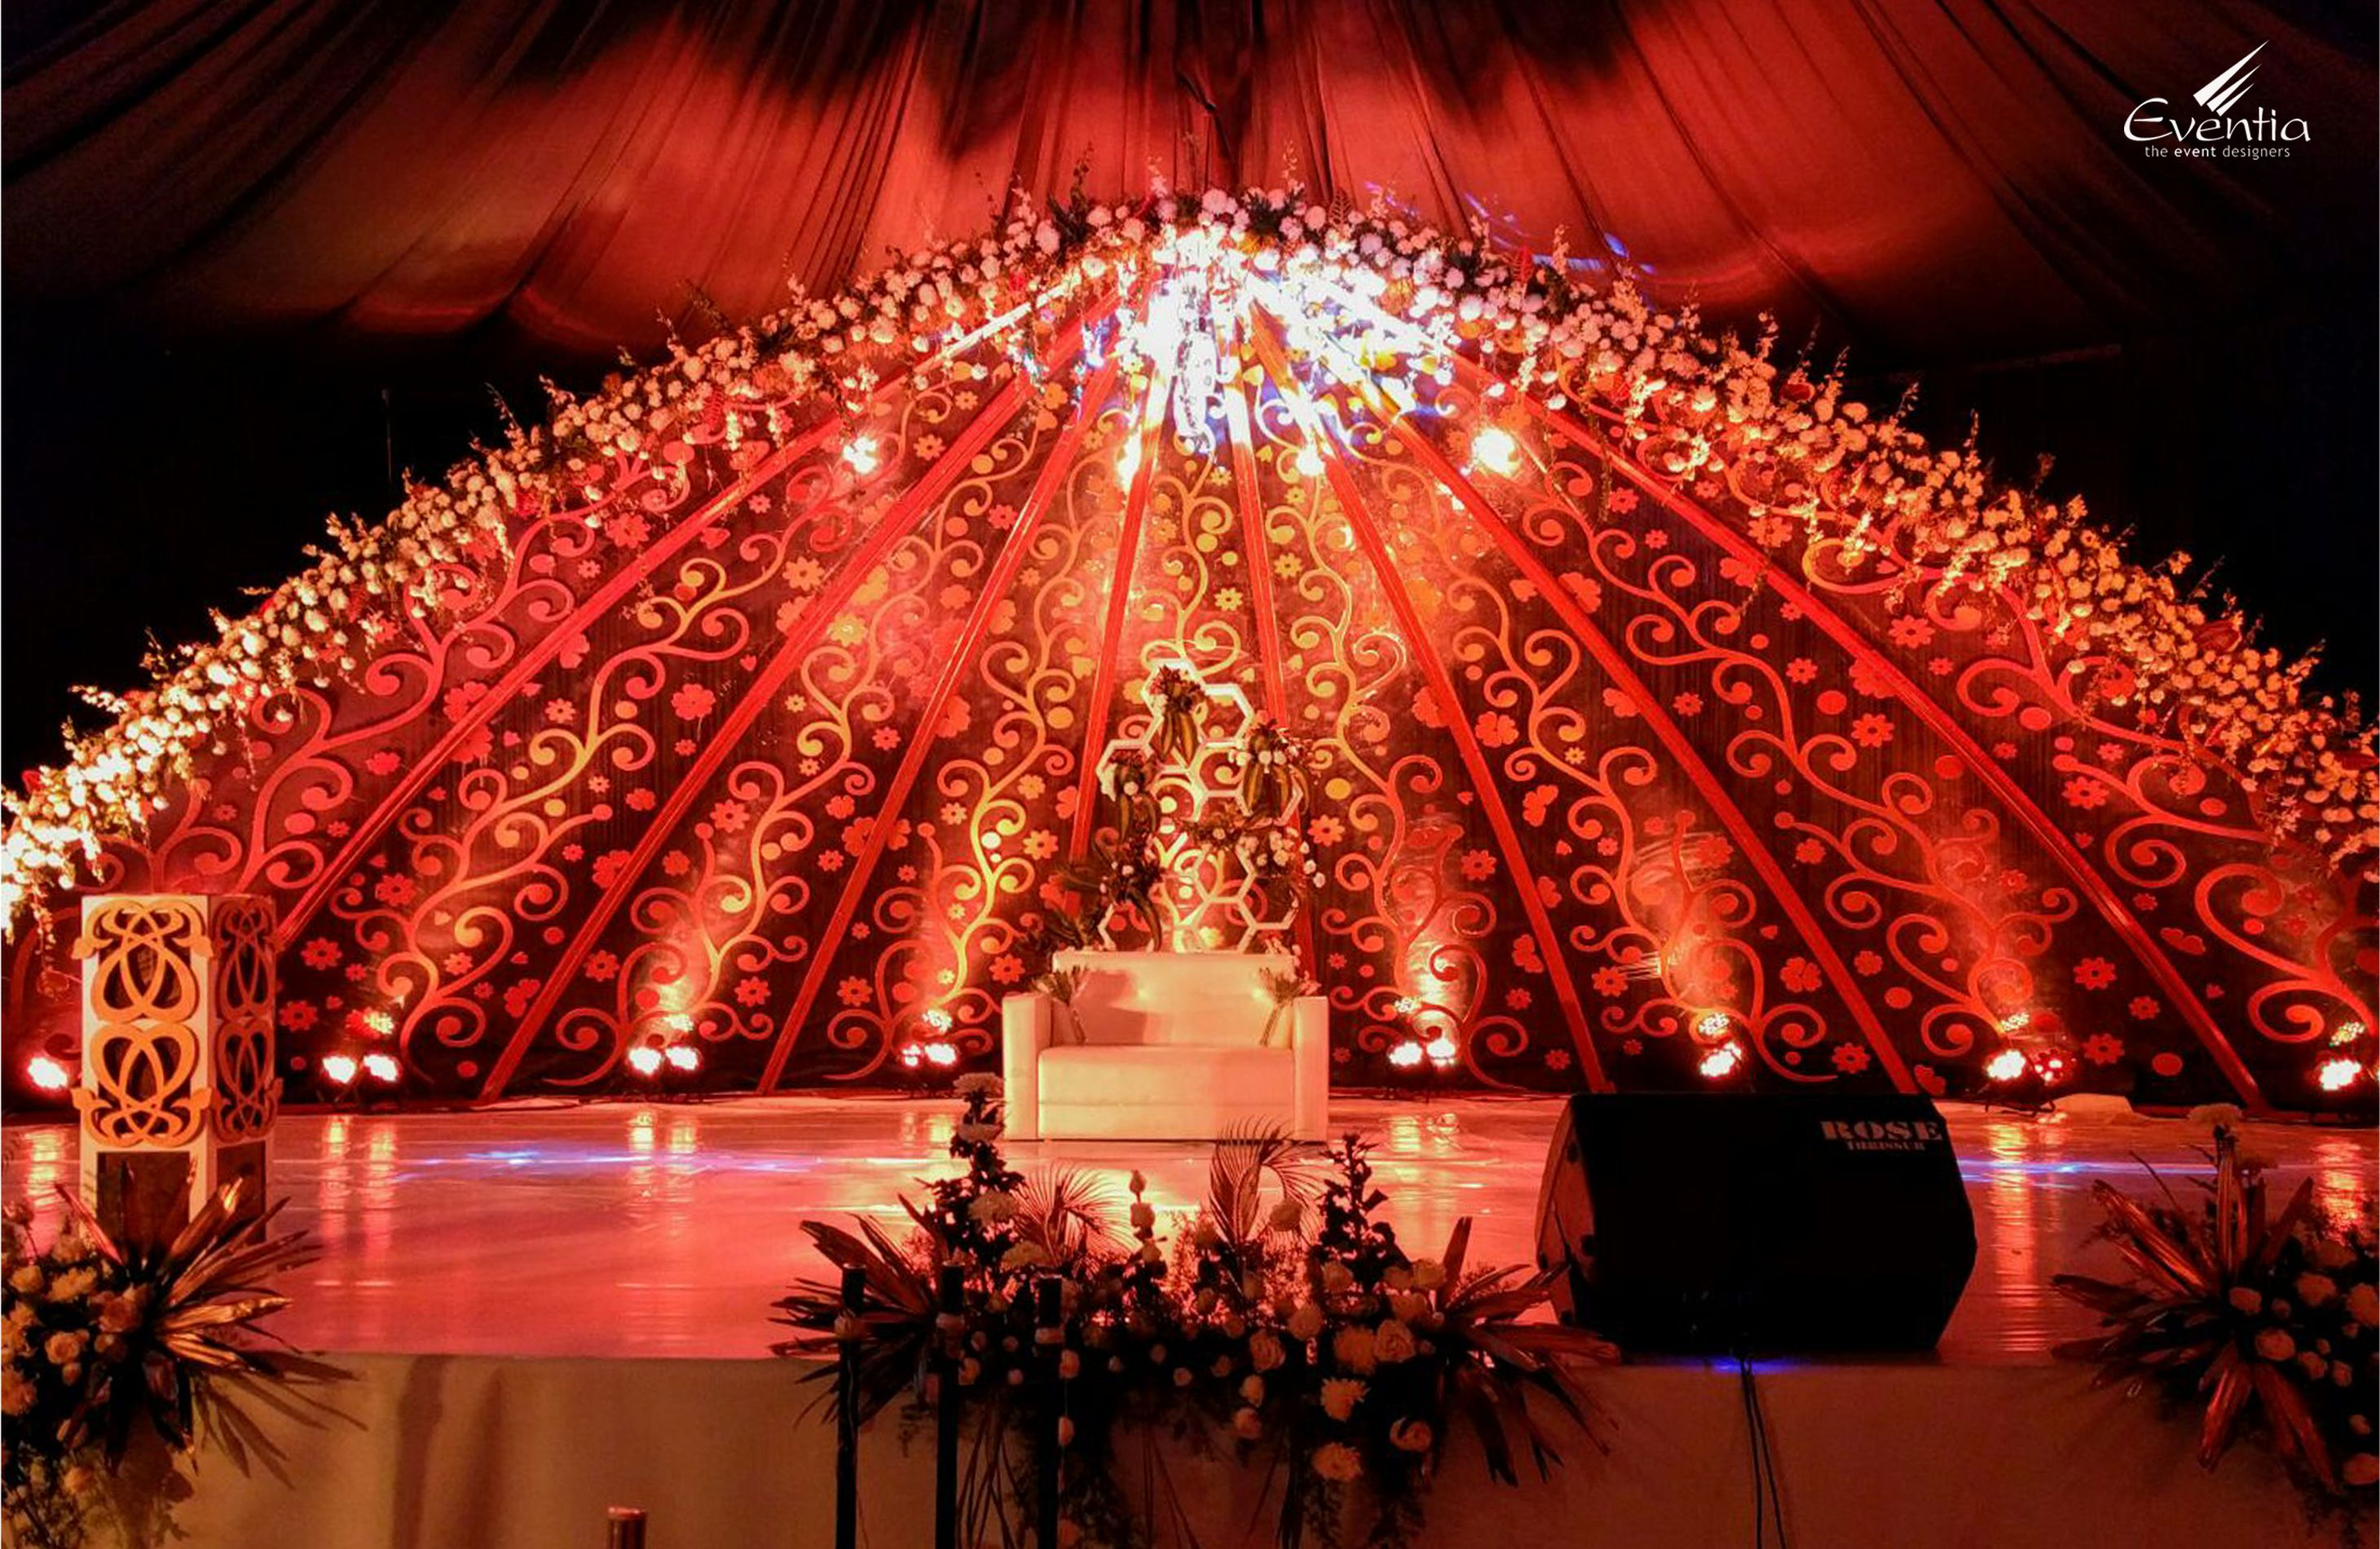 Pin by Eventia Event Designers on Wedding Stages Wedding hall decorations Wedding stage decor